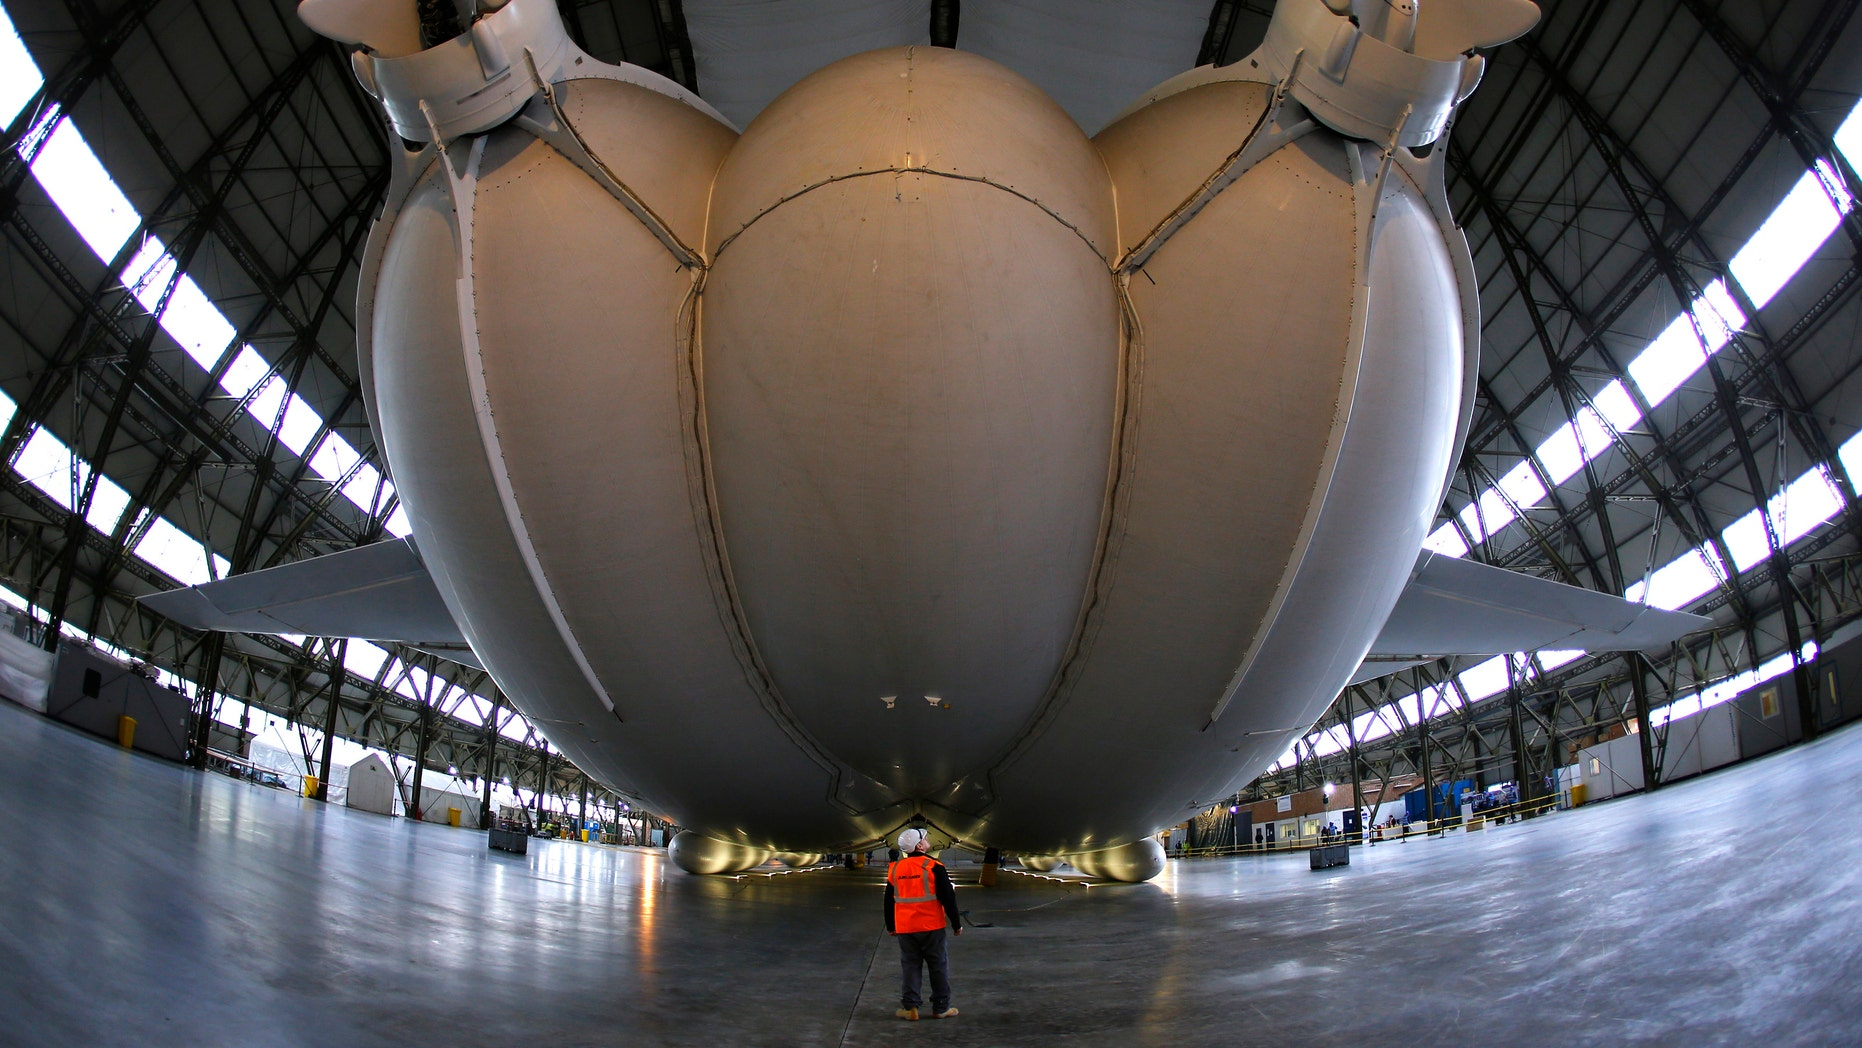 A worker stands under the Airlander 10 hybrid airship during its unveiling in Cardington, Britain March 21, 2016. (REUTERS/Darren Staples)